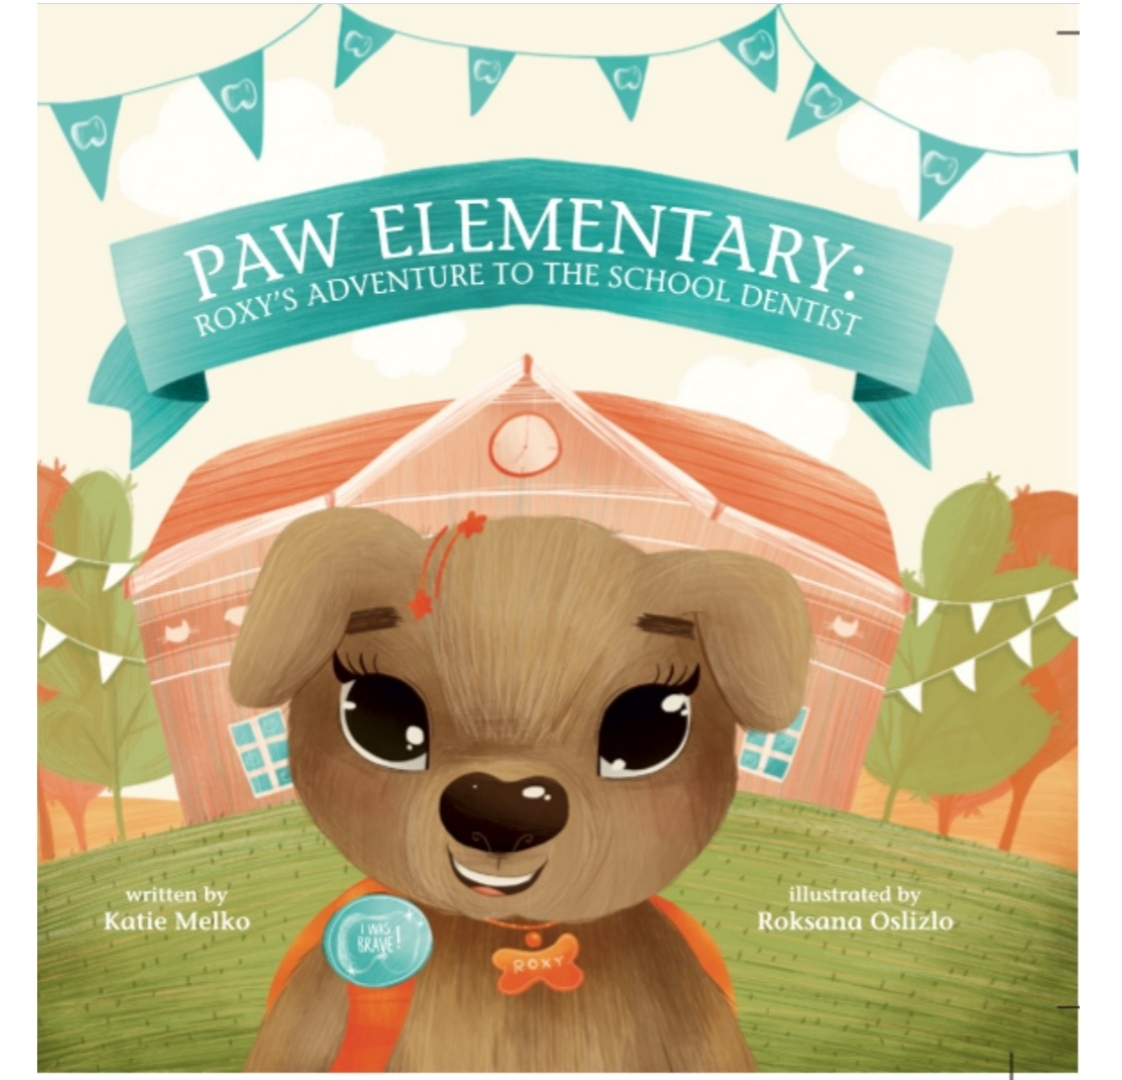 Kid Lit Book Review – Paw Elementary: Roxy's Adventure to the School Dentist by Katie Melko